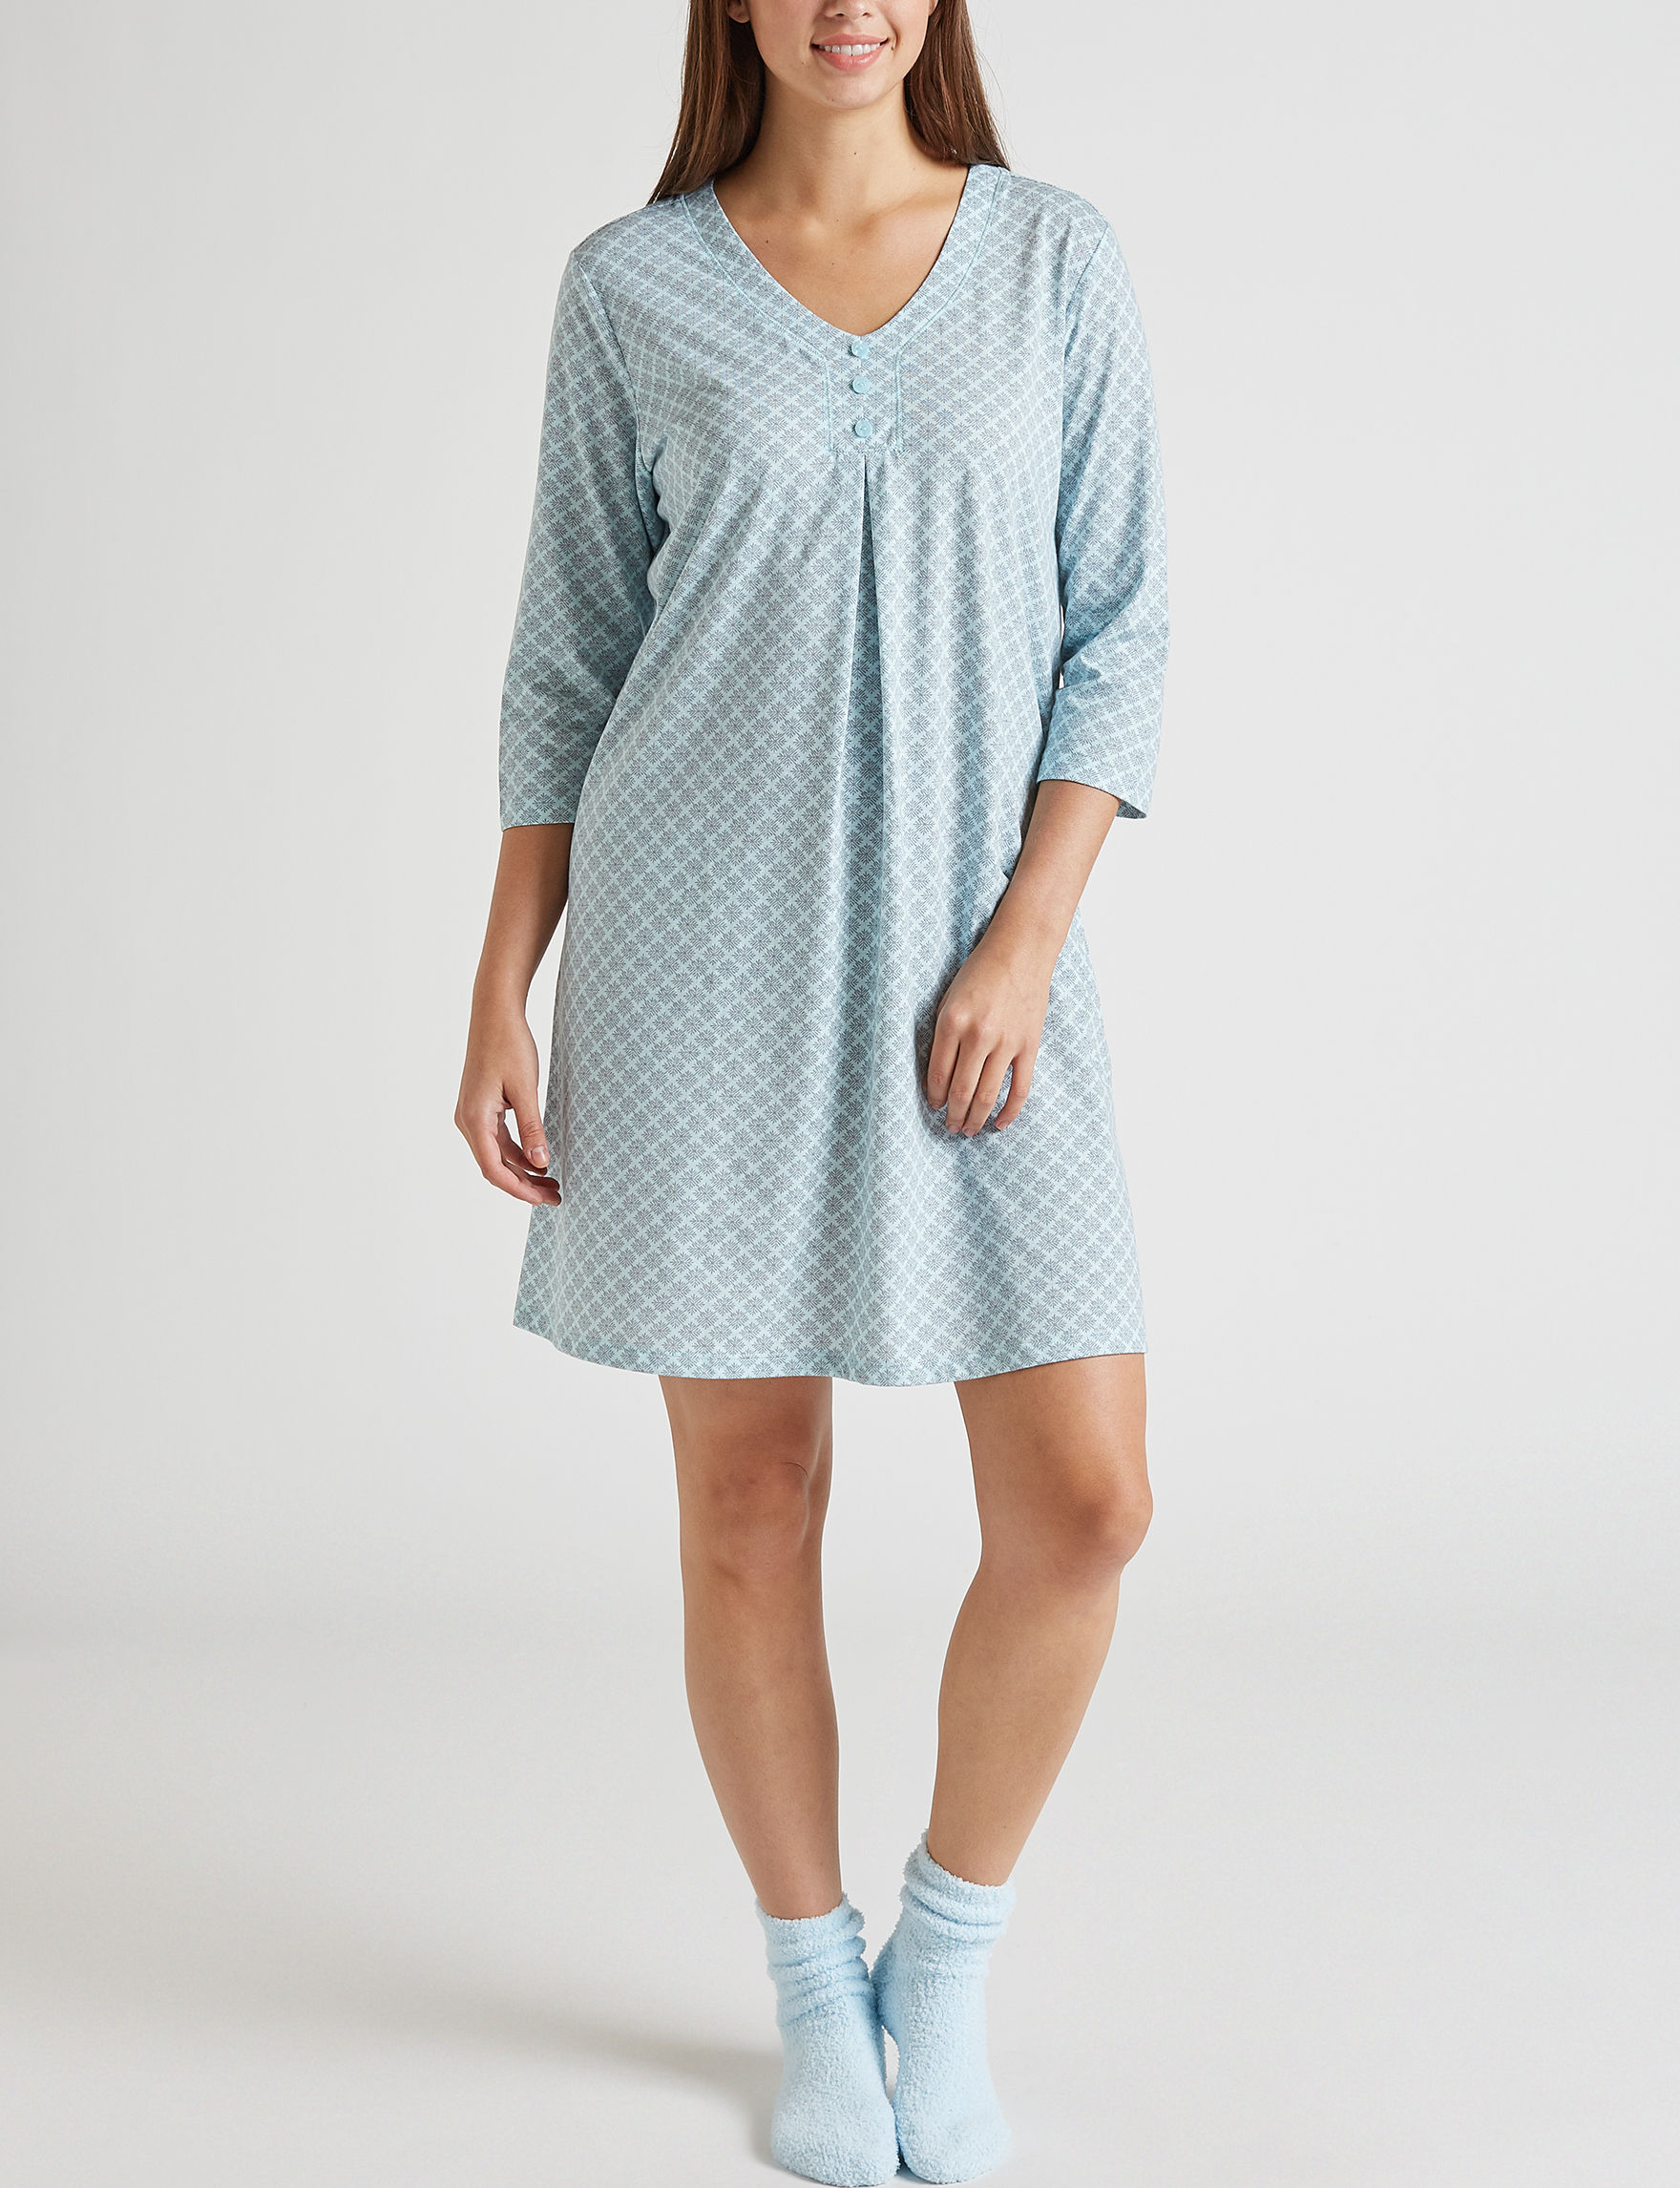 White Orchid Blue Nightgowns & Sleep Shirts